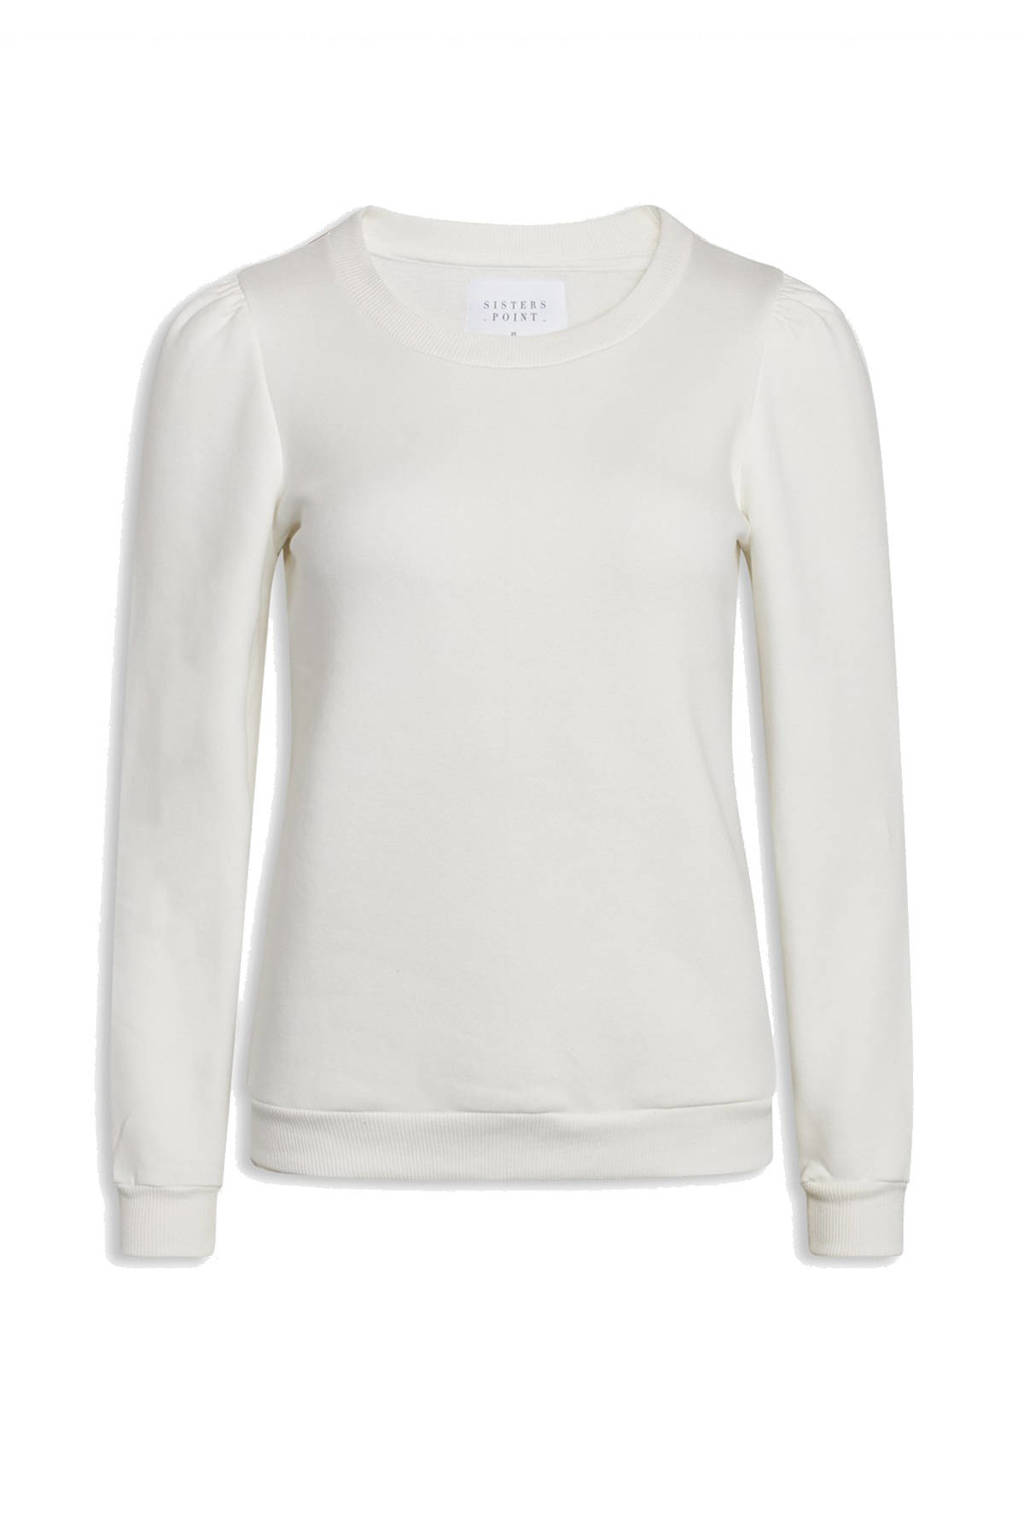 SisterS Point sweater offwhite, Offwhite